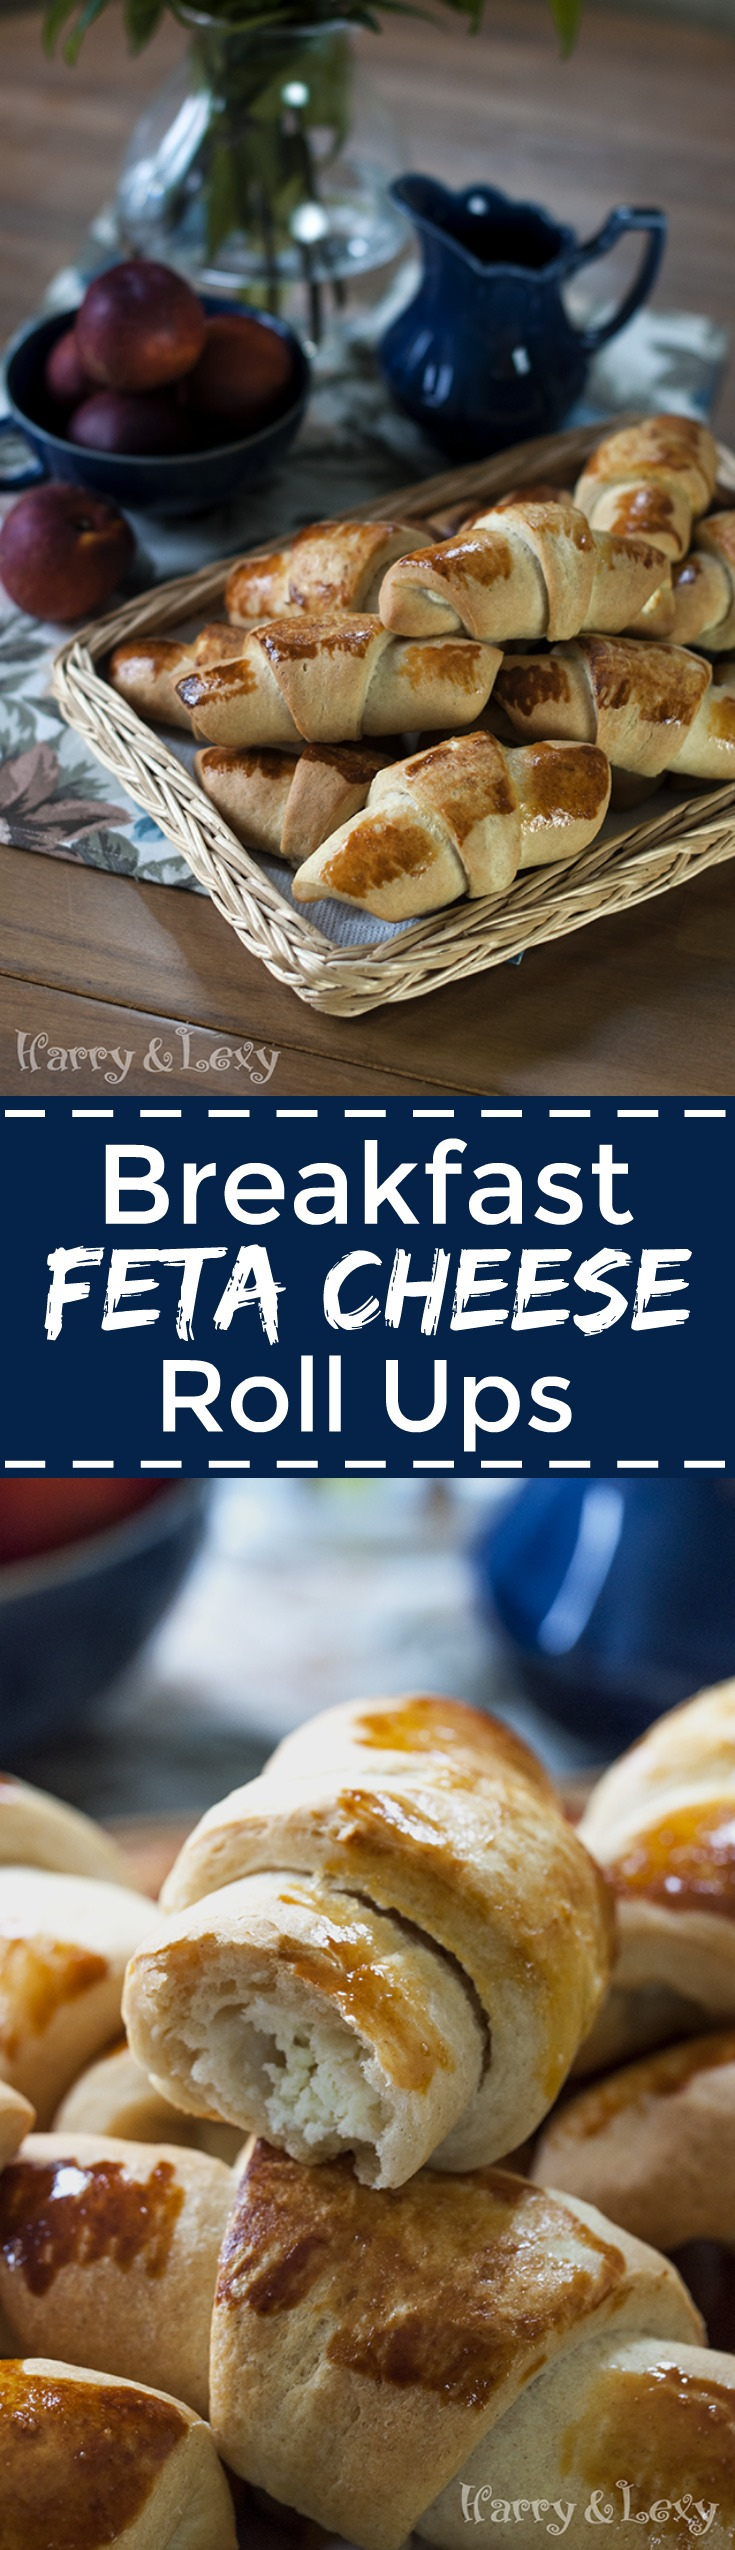 Breakfast Feta Cheese Roll Ups